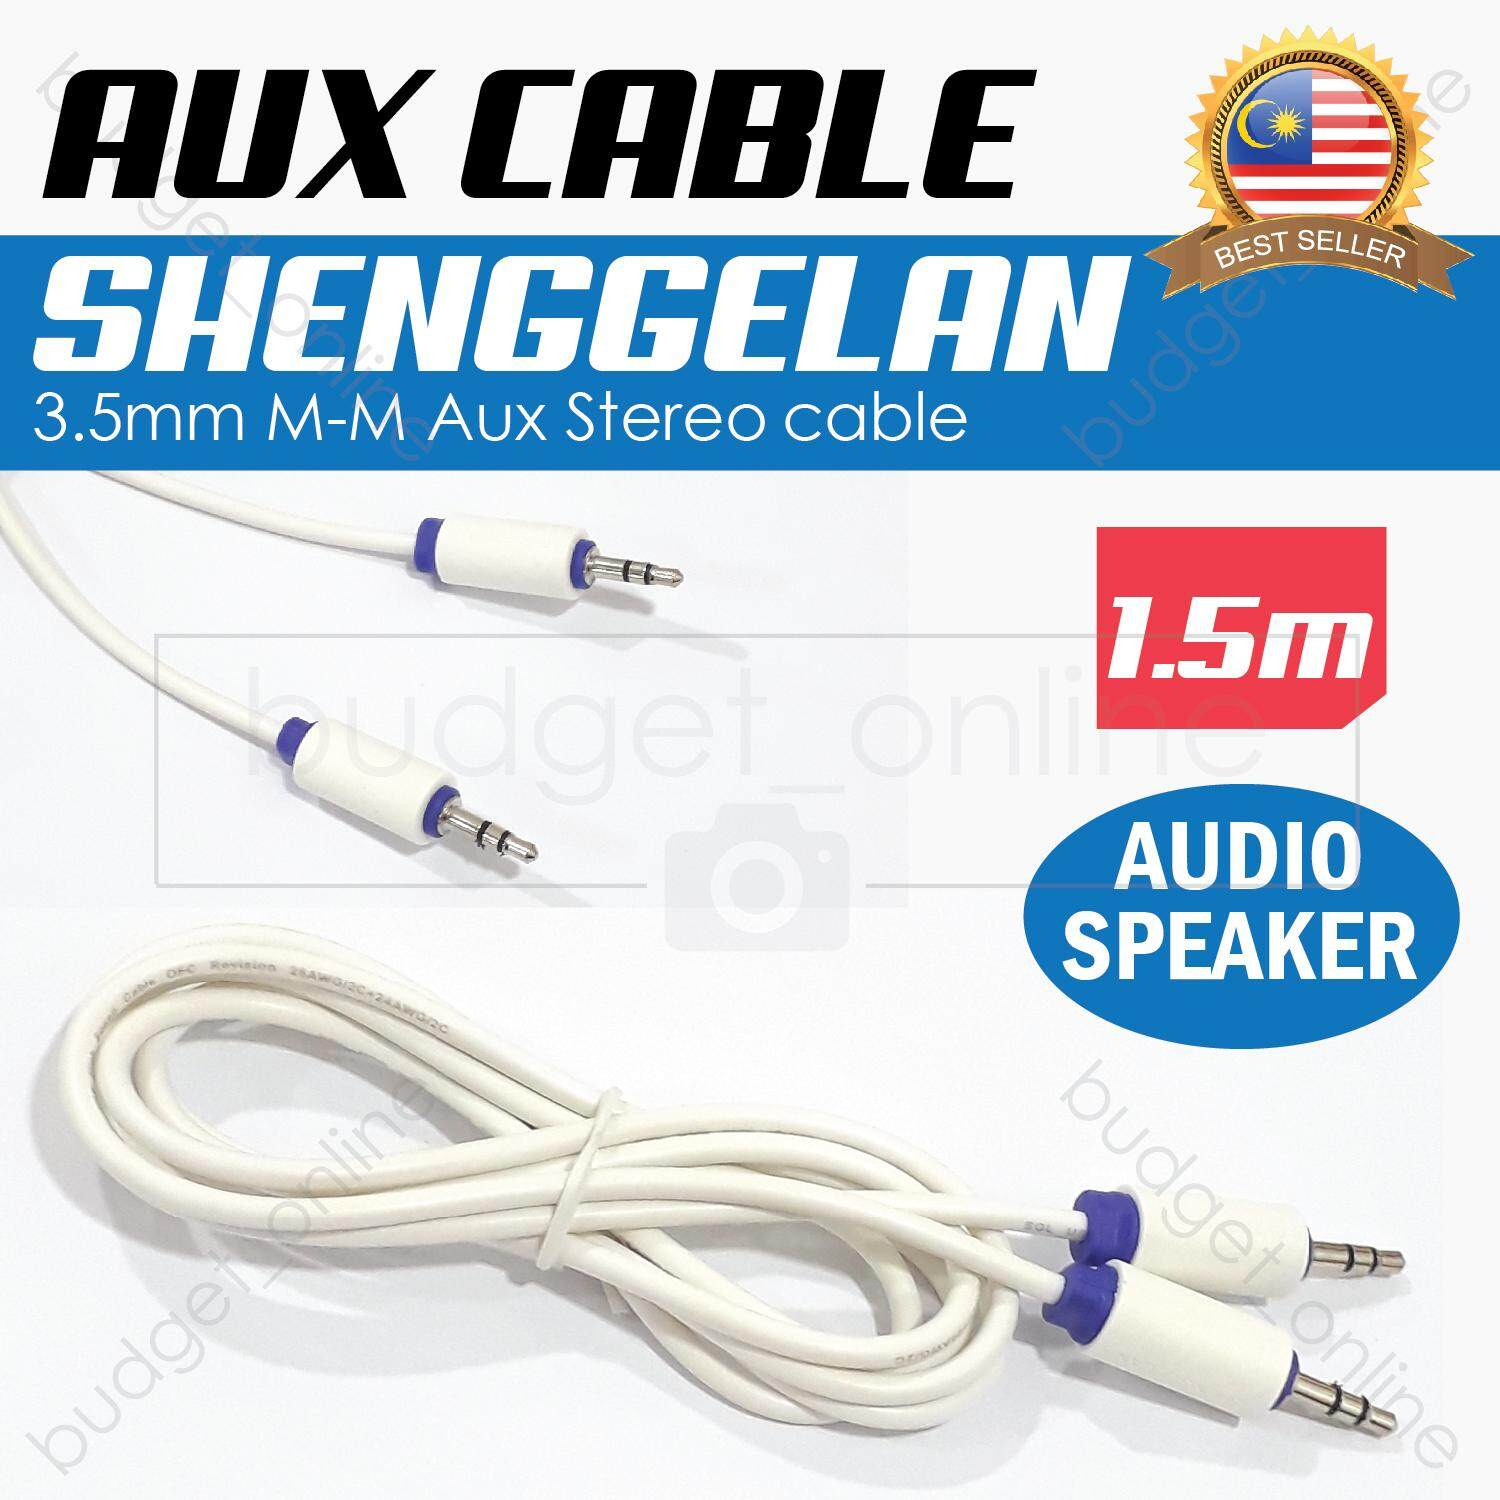 Shenggelan Aux Cable 1.5m Audio Stereo Speaker Headphone By Budgetonline.